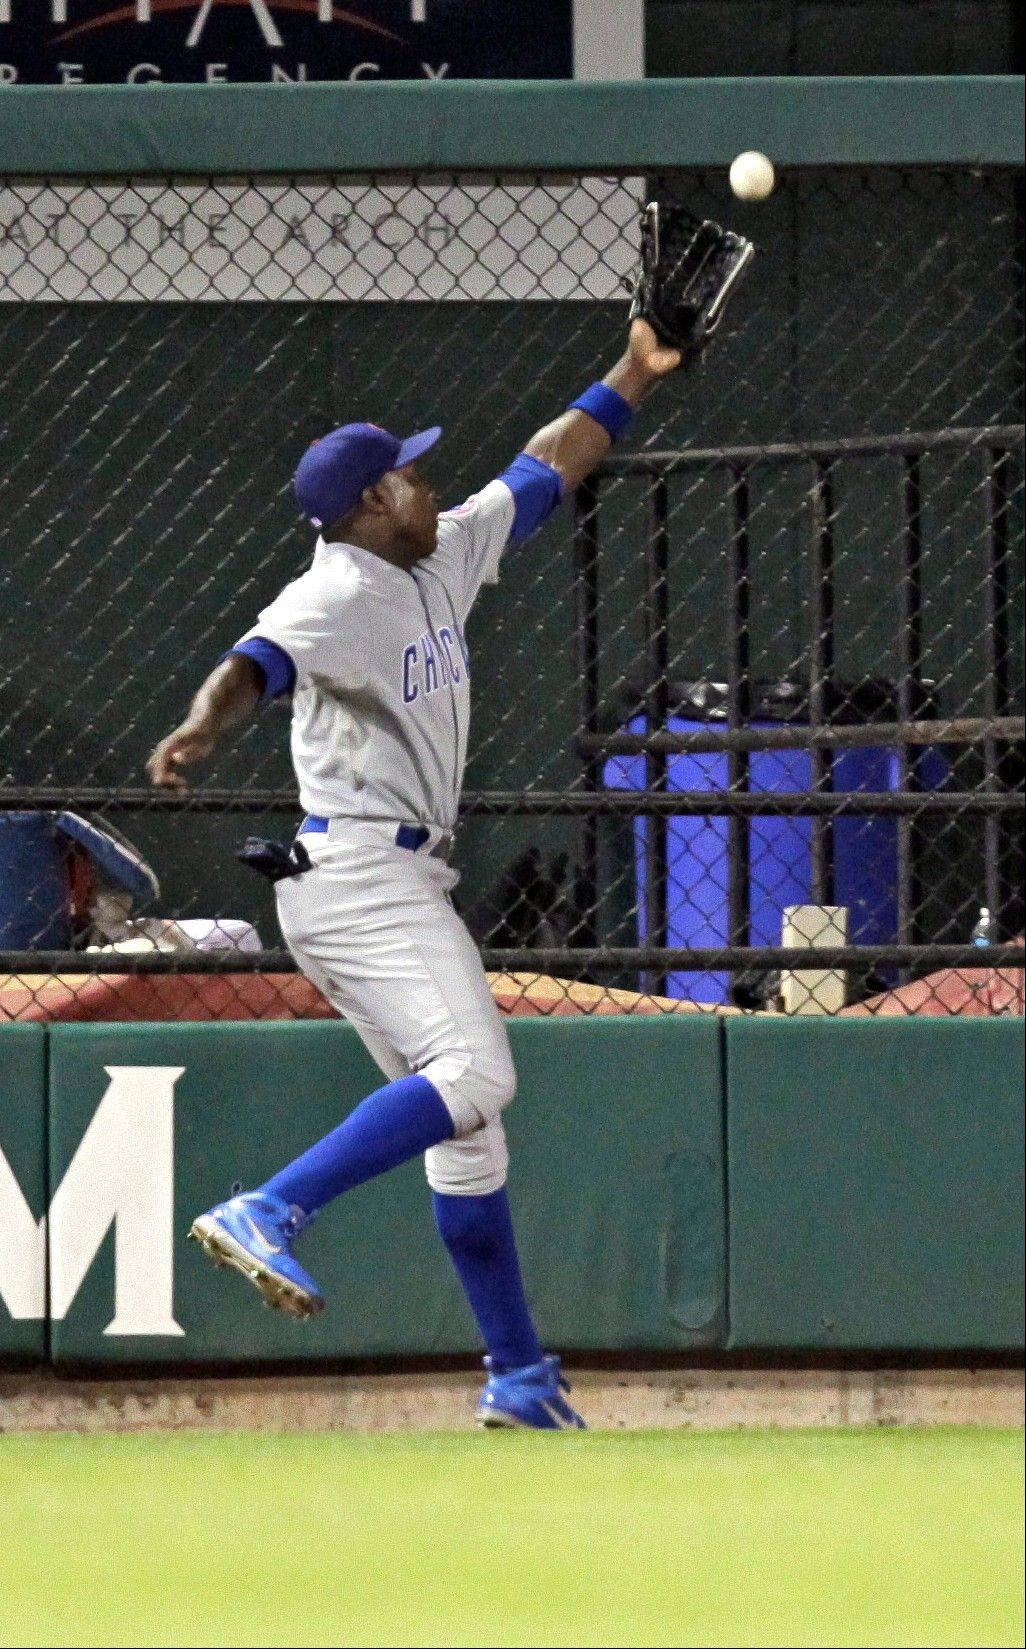 Cubs left fielder Alfonso Soriano misses a ball hit by the Cardinals' Yadier Molina in the sixth inning Thursday in St. Louis.